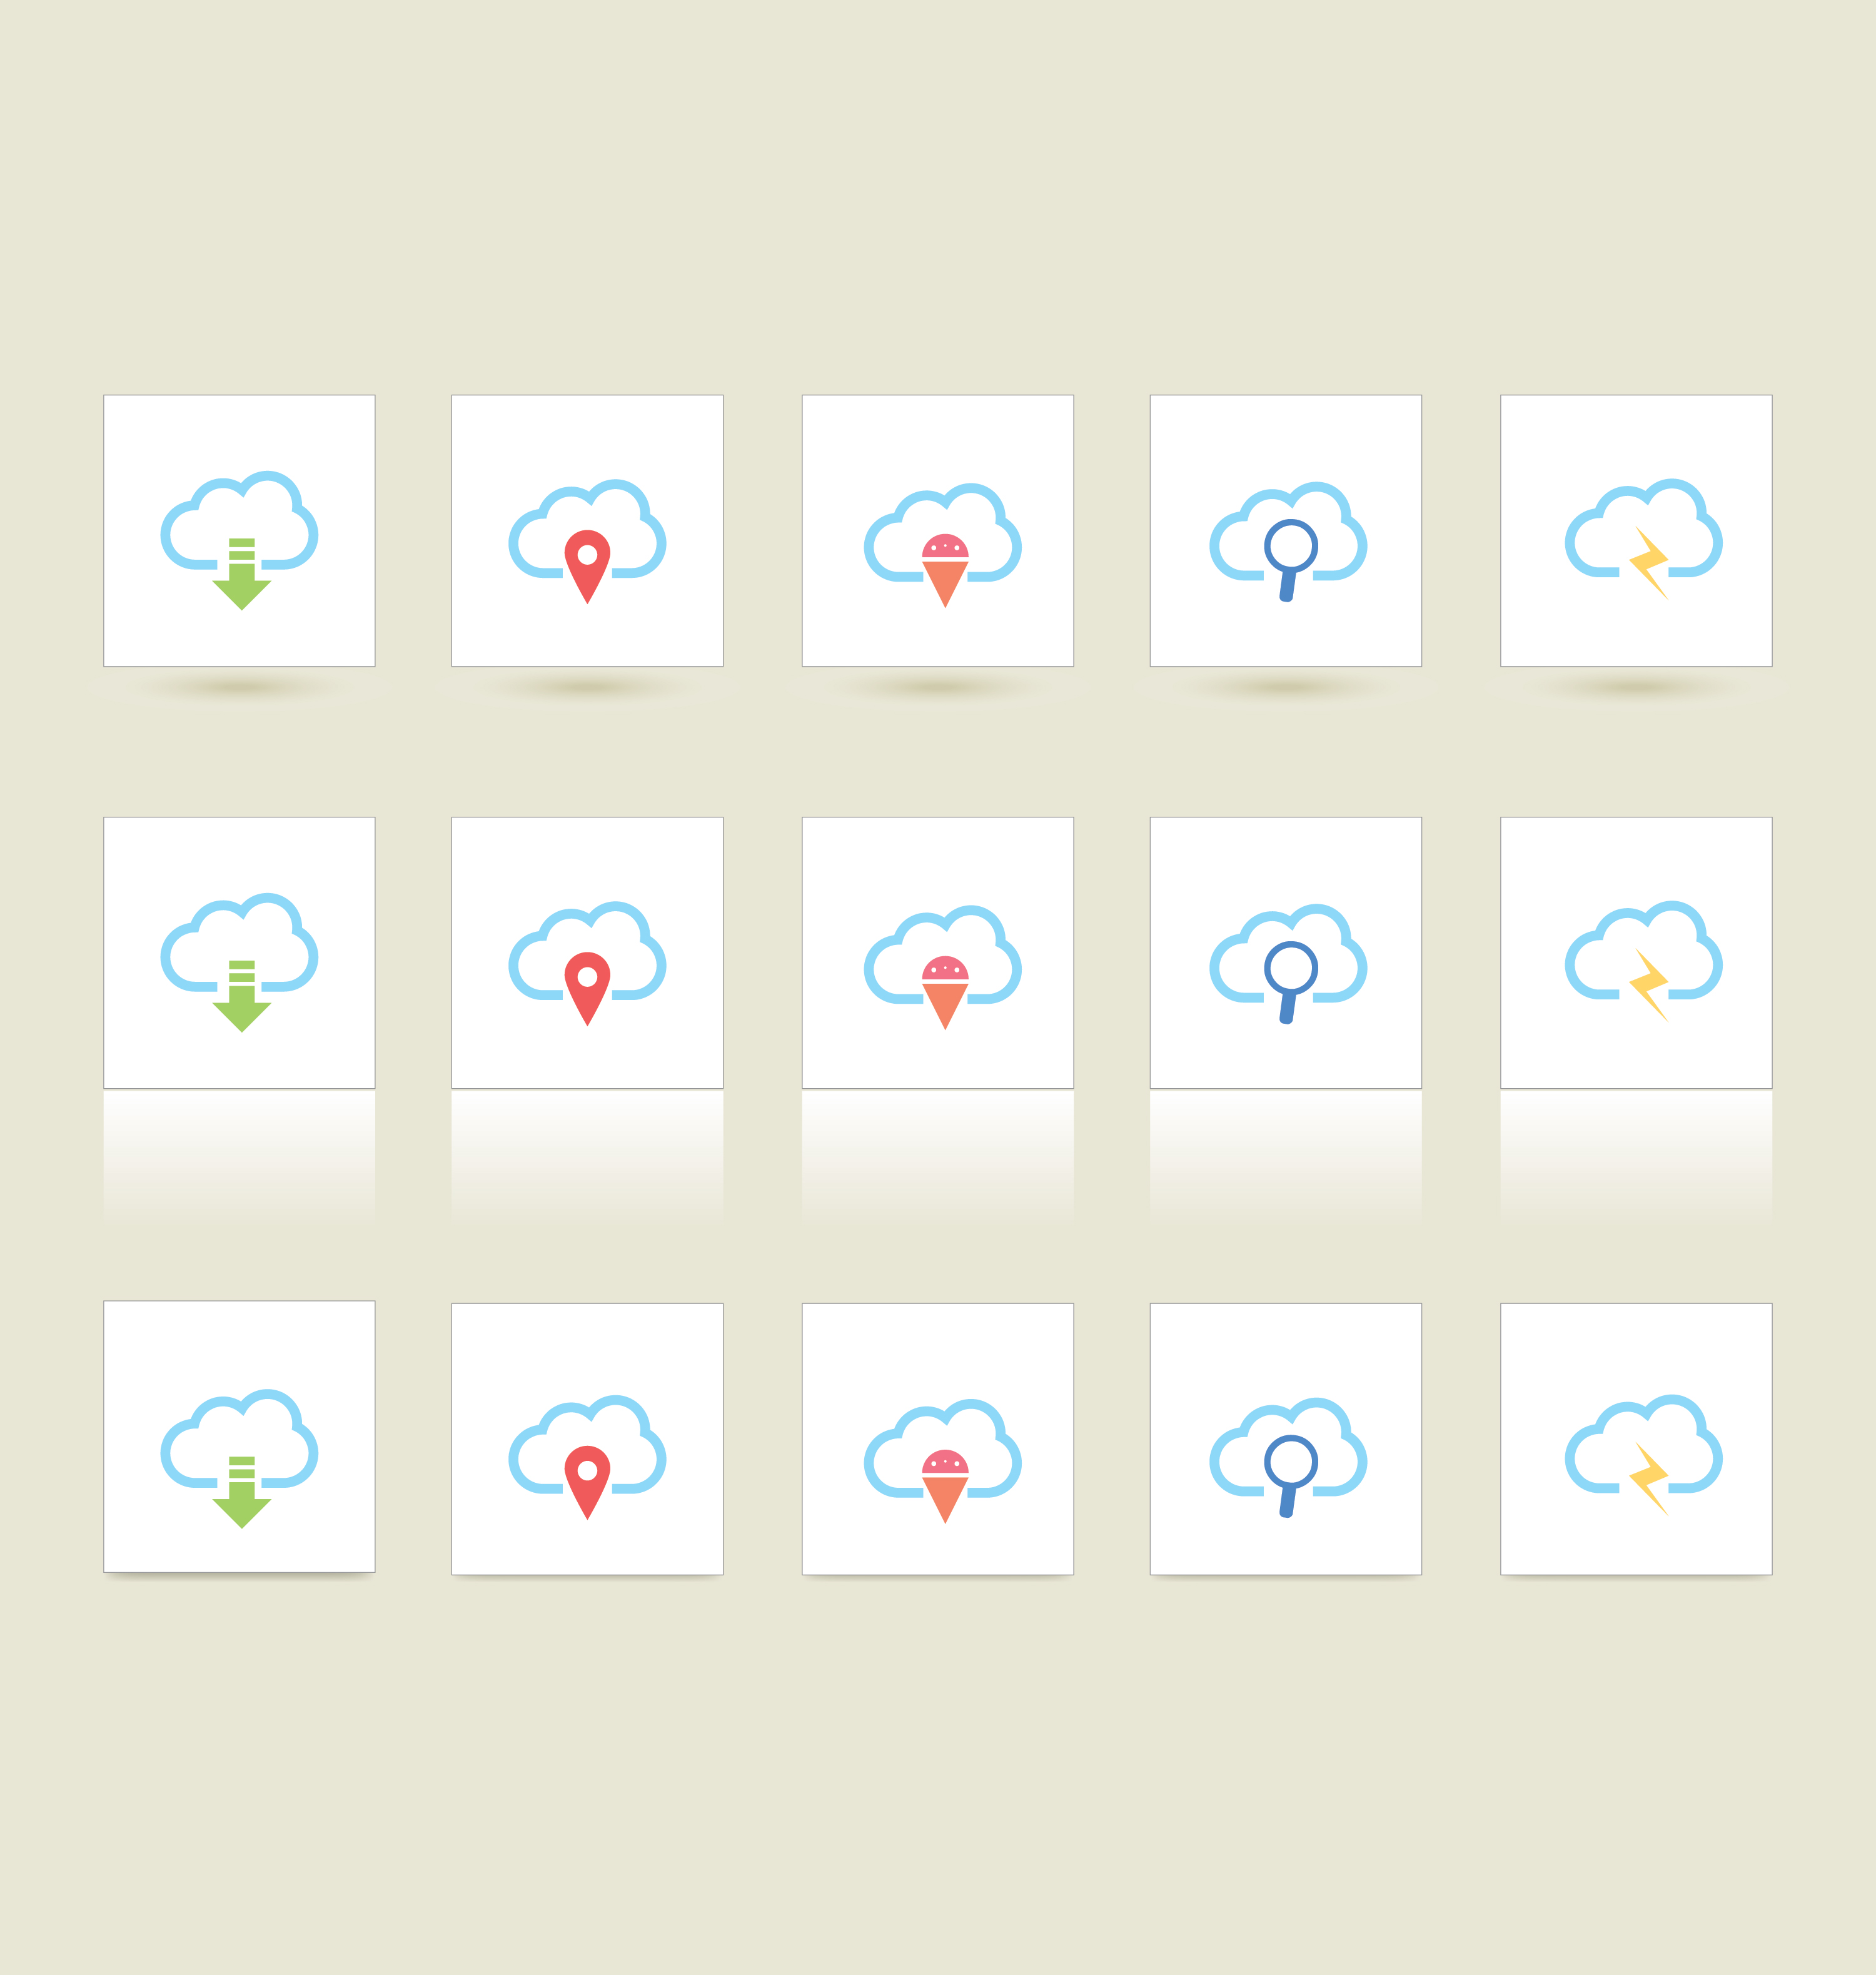 cloud 3 styles icons 1